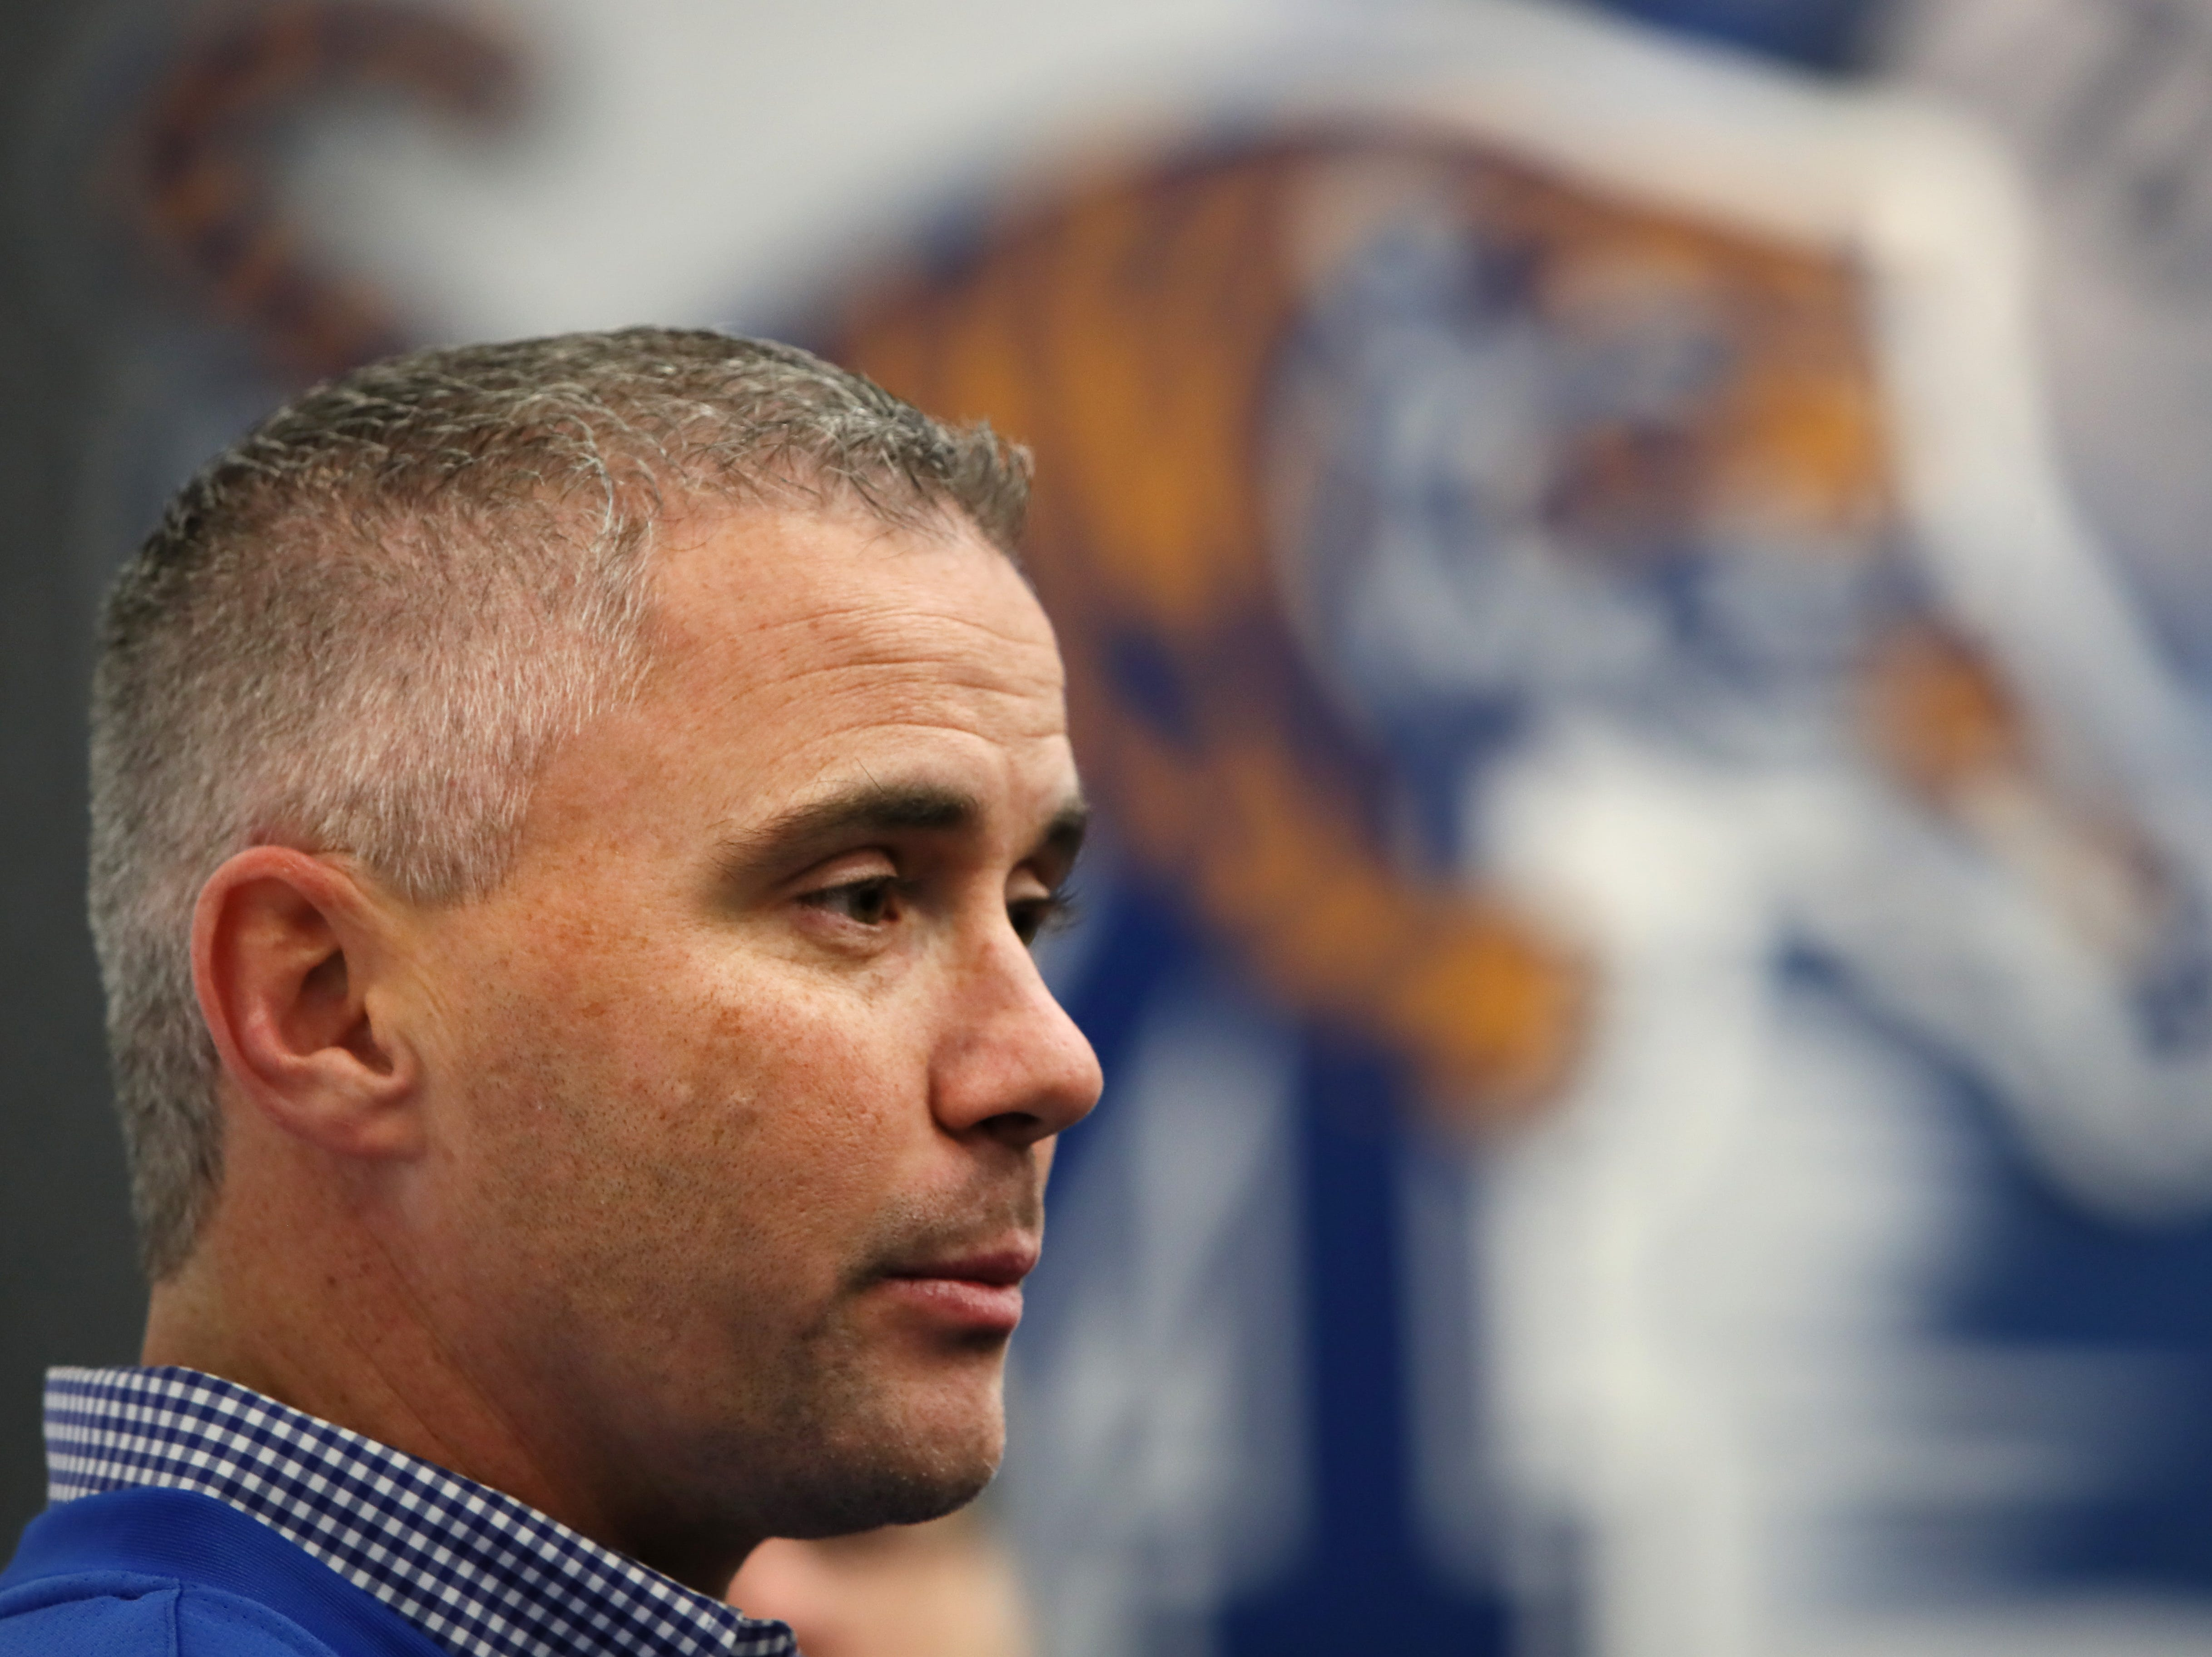 Memphis Tigers Head Coach Mike Norvell talks to reporters during a press conference to introduce new coaching staff members on the university's campus Saturday, Jan. 12, 2019.